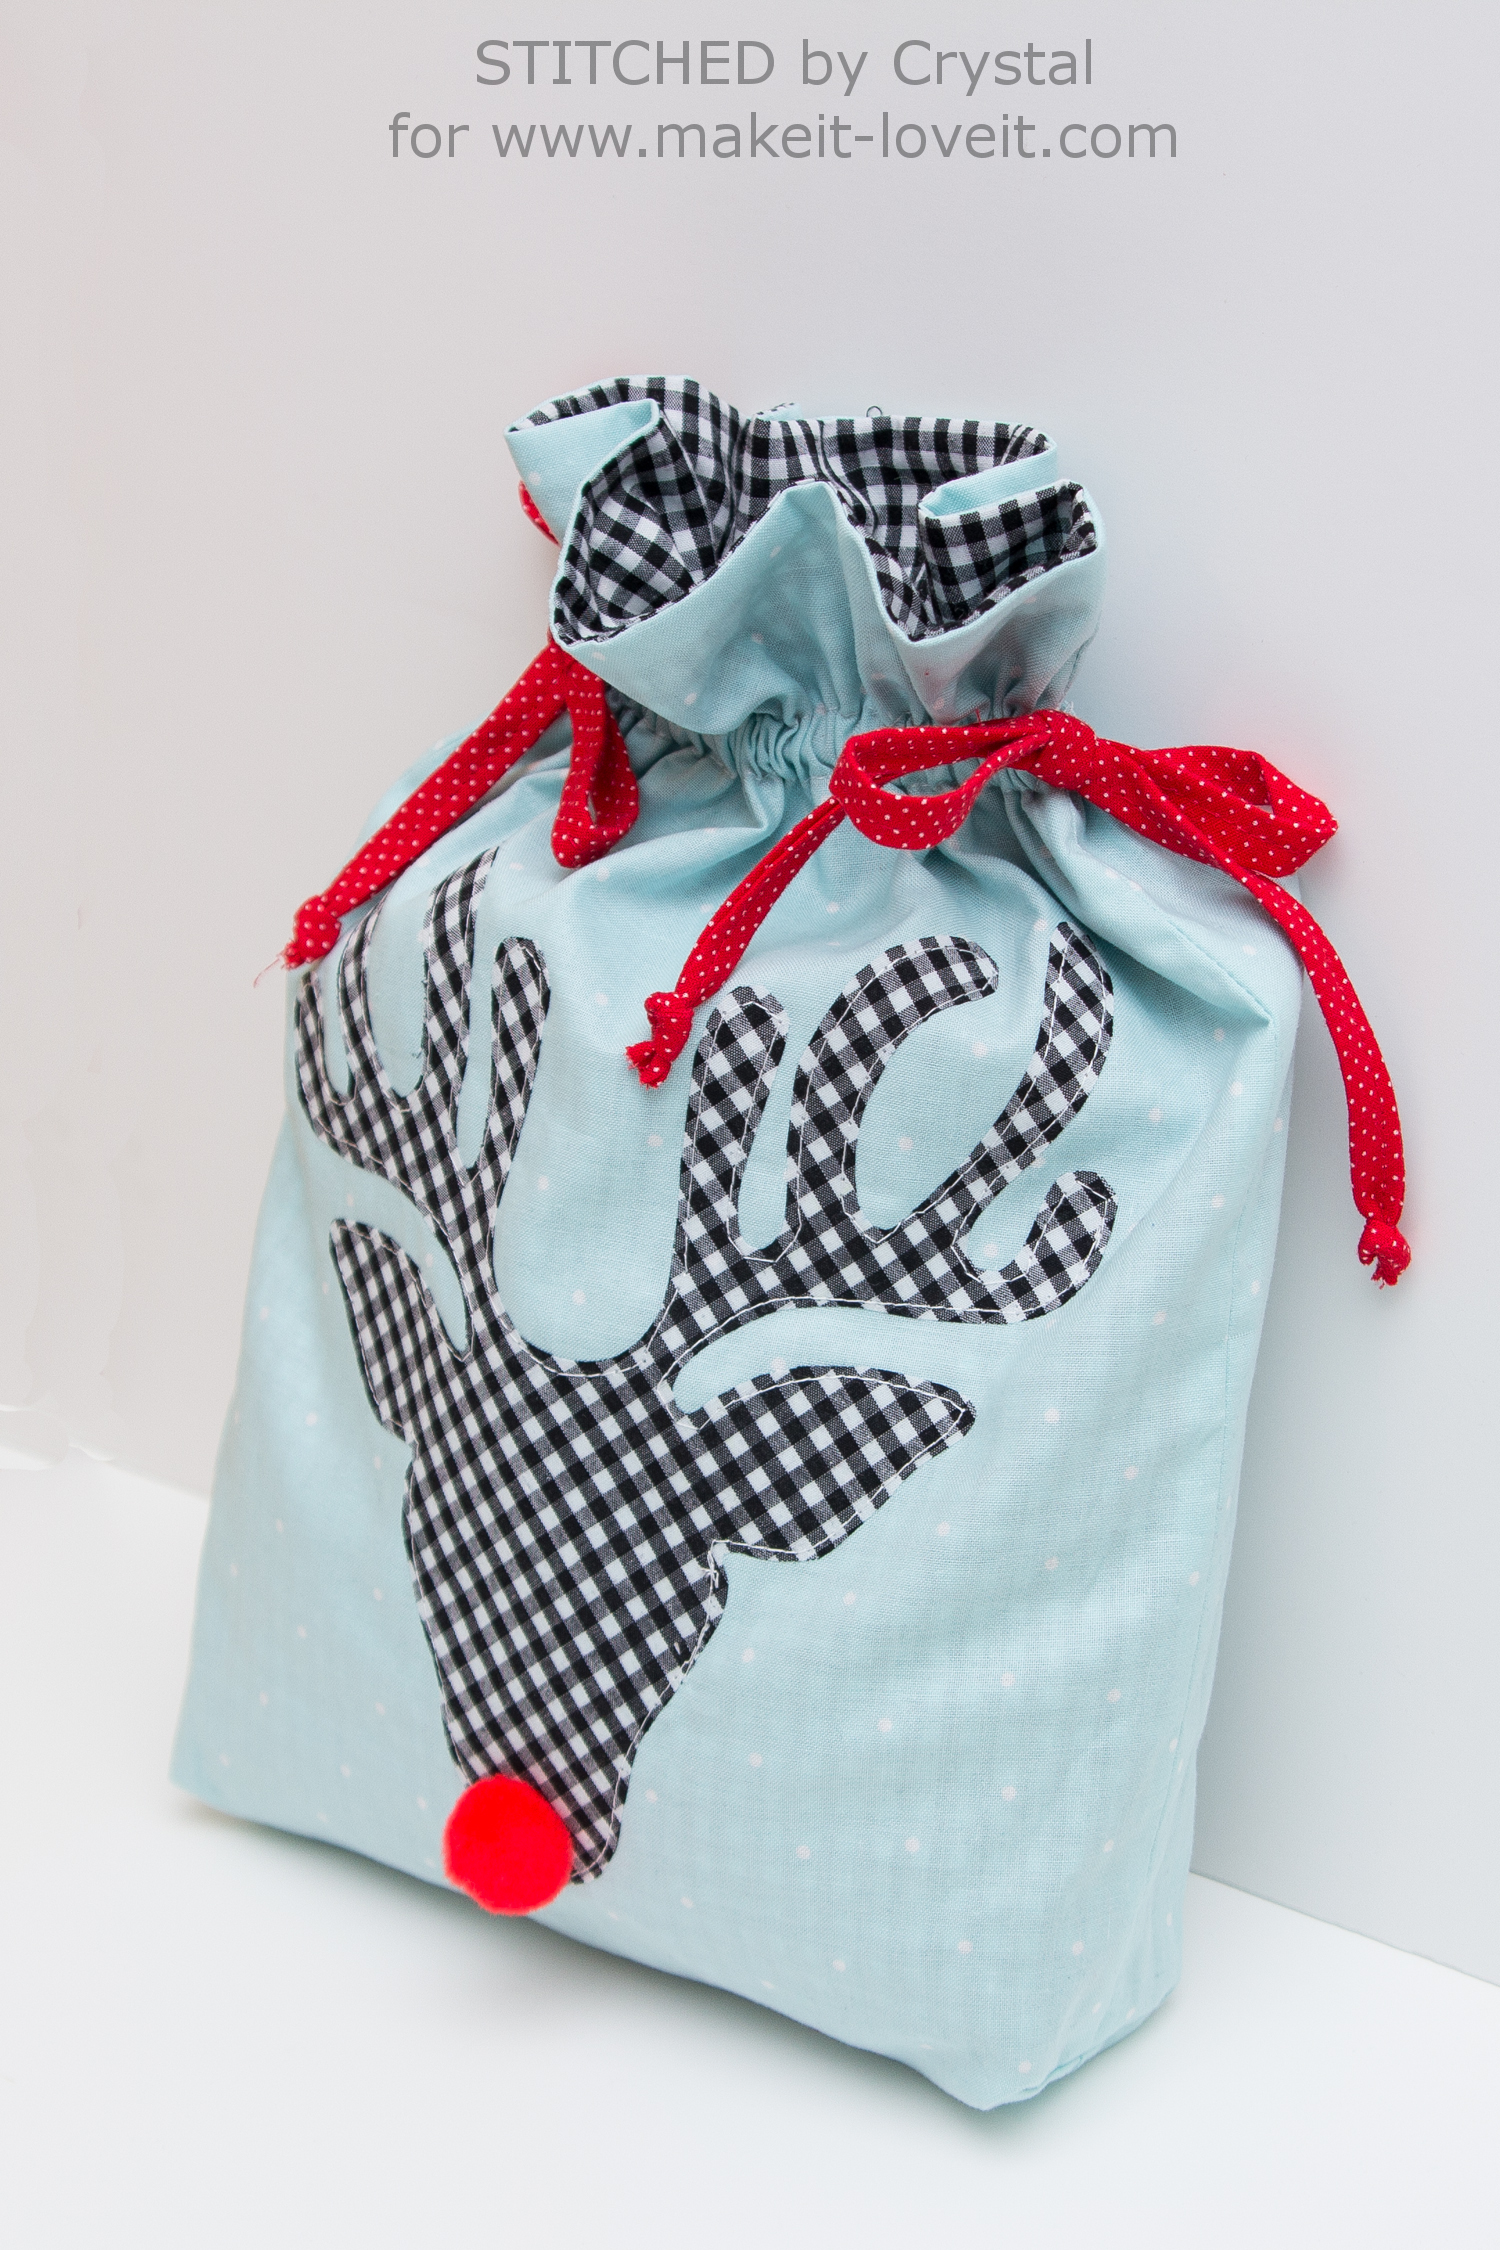 Sew a Reusable Rudolph Gift Bag! | via www.makeit-loveit.com